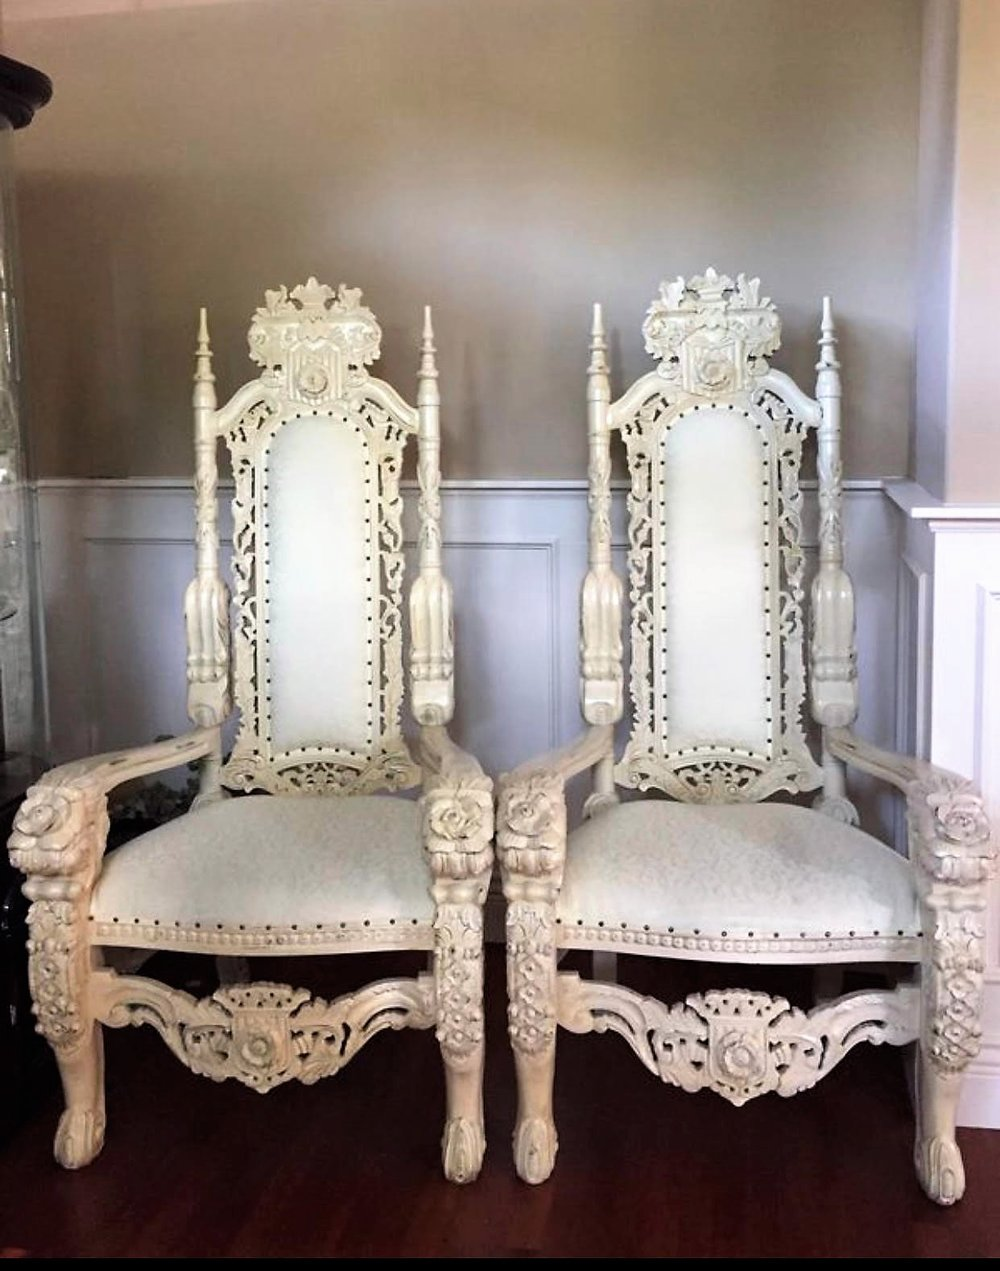 Grand Royal Chairs.jpg